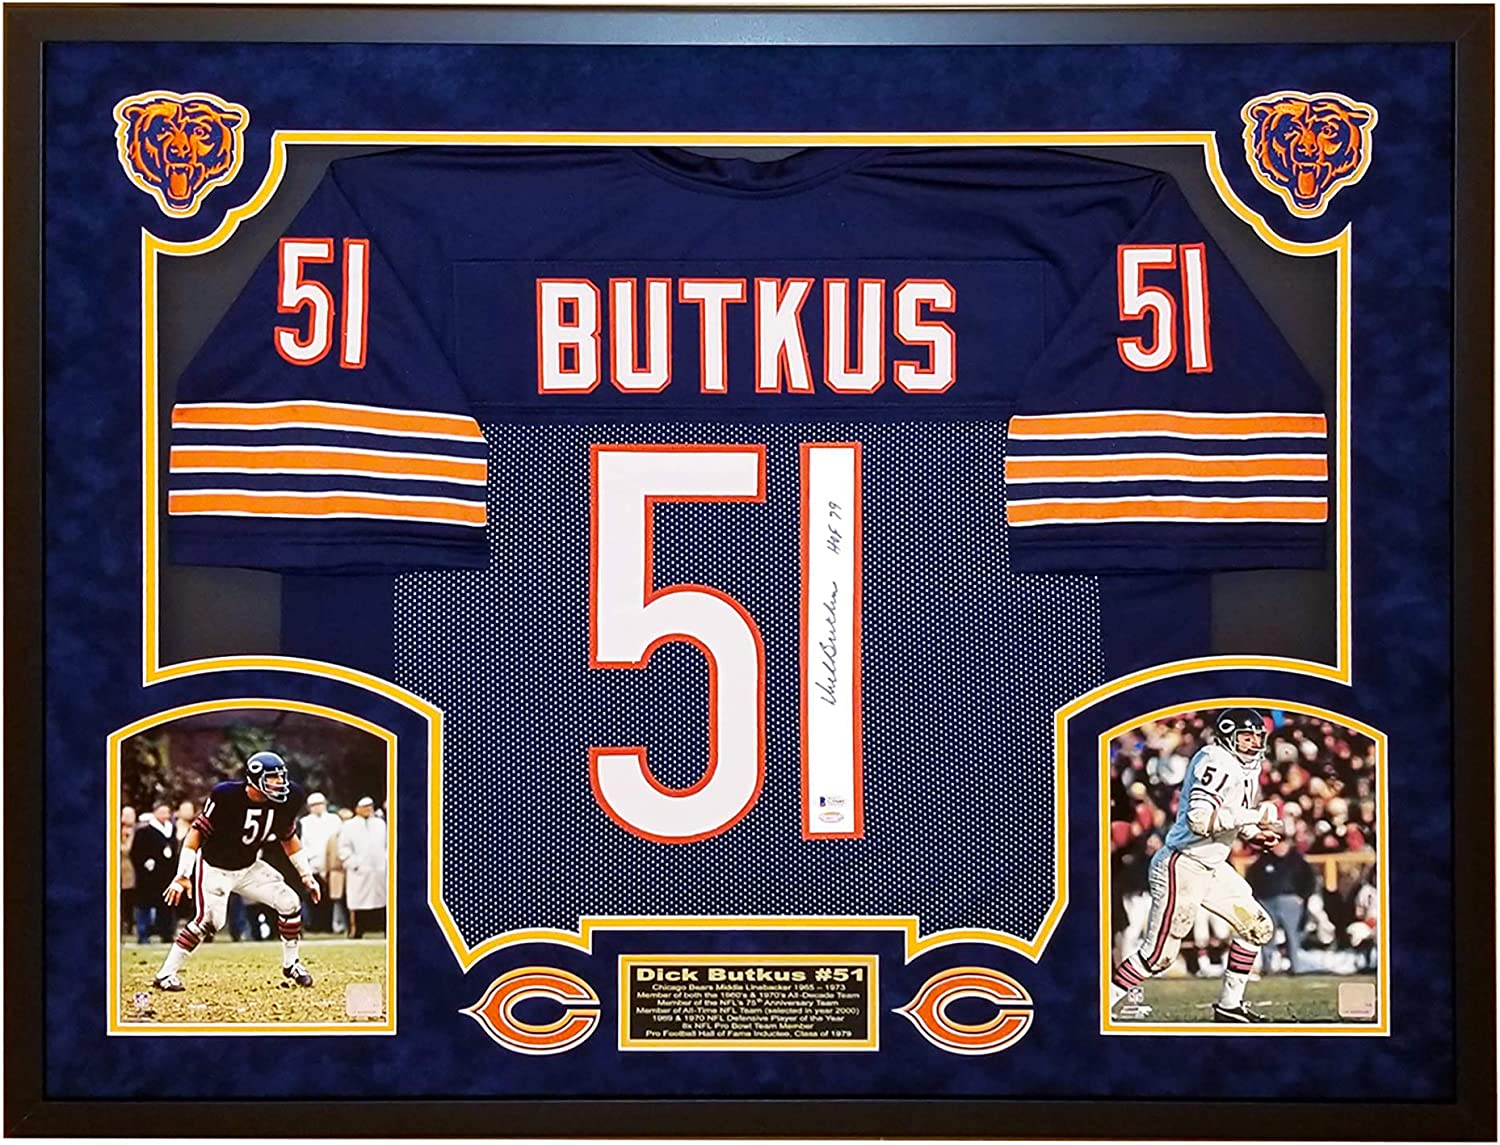 Dick Butkus Autographed Bears Jersey - Premium Suede Matted and ...